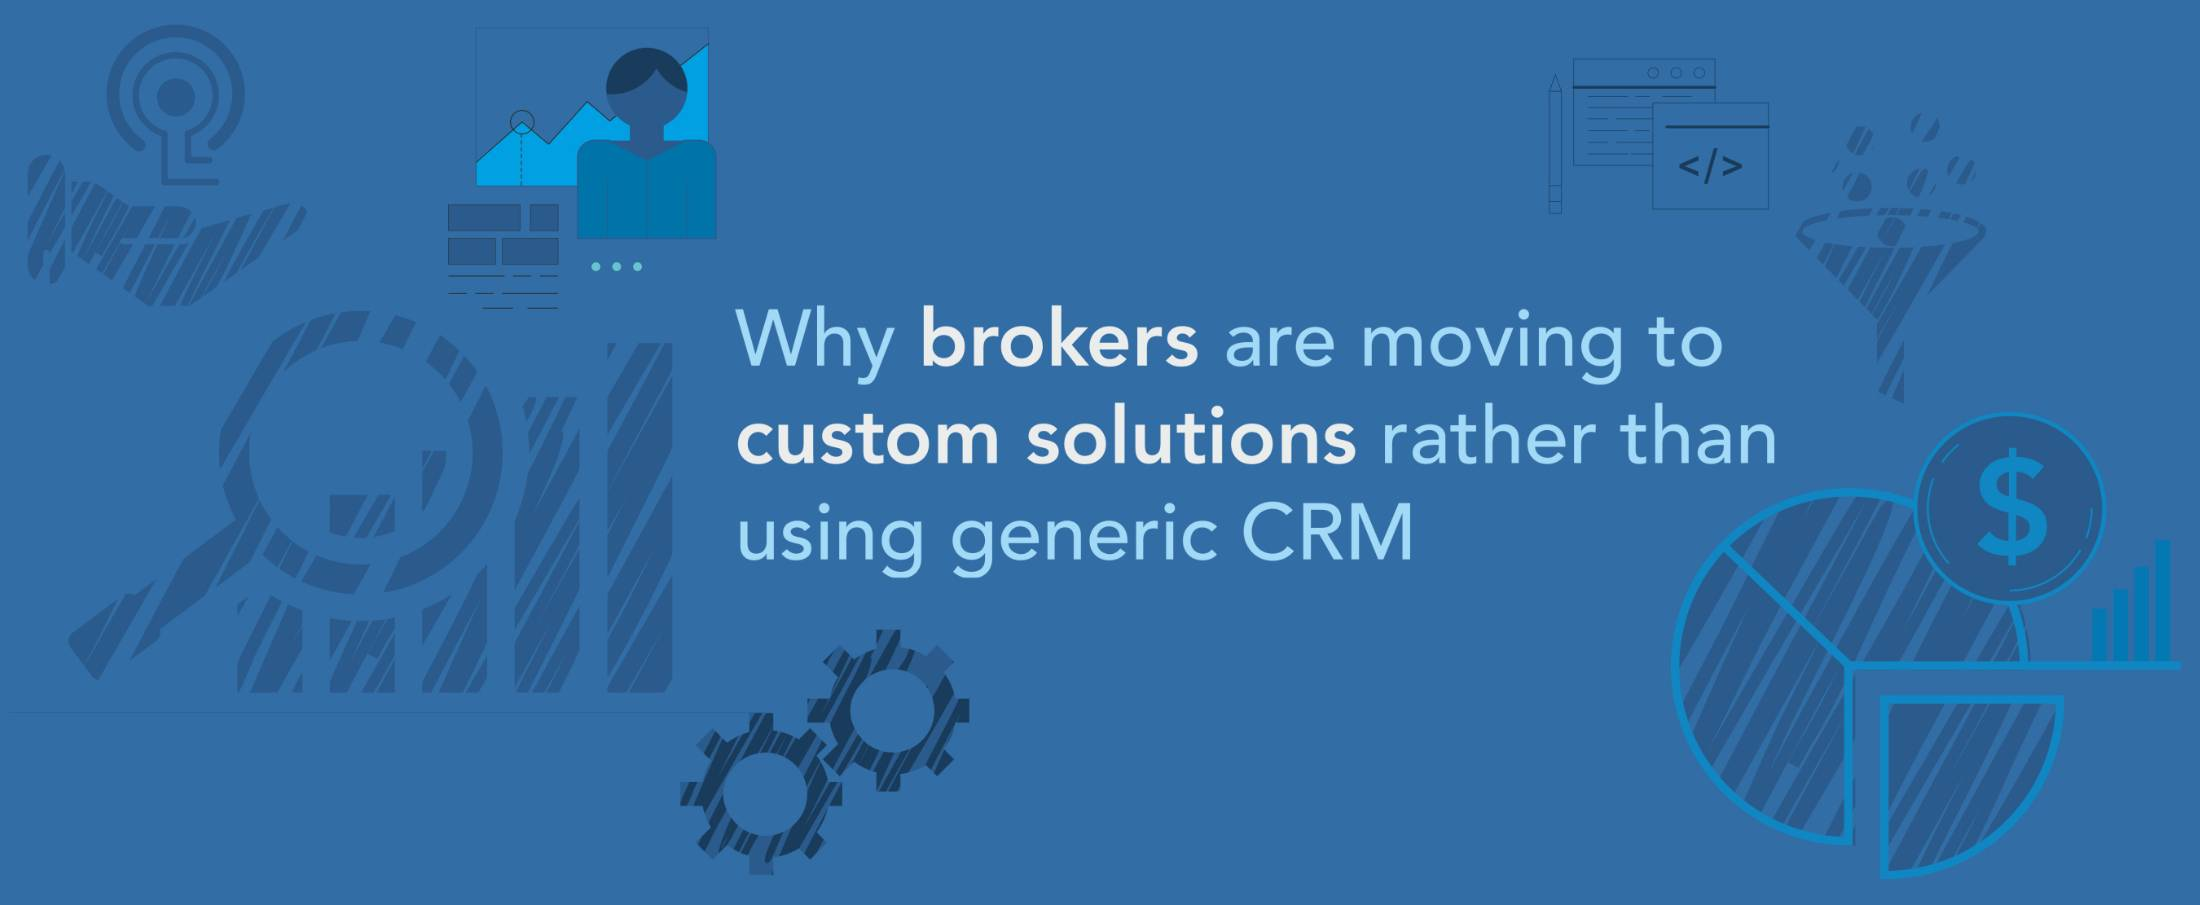 brokers are moving to custom solutions rather than using generic CRM